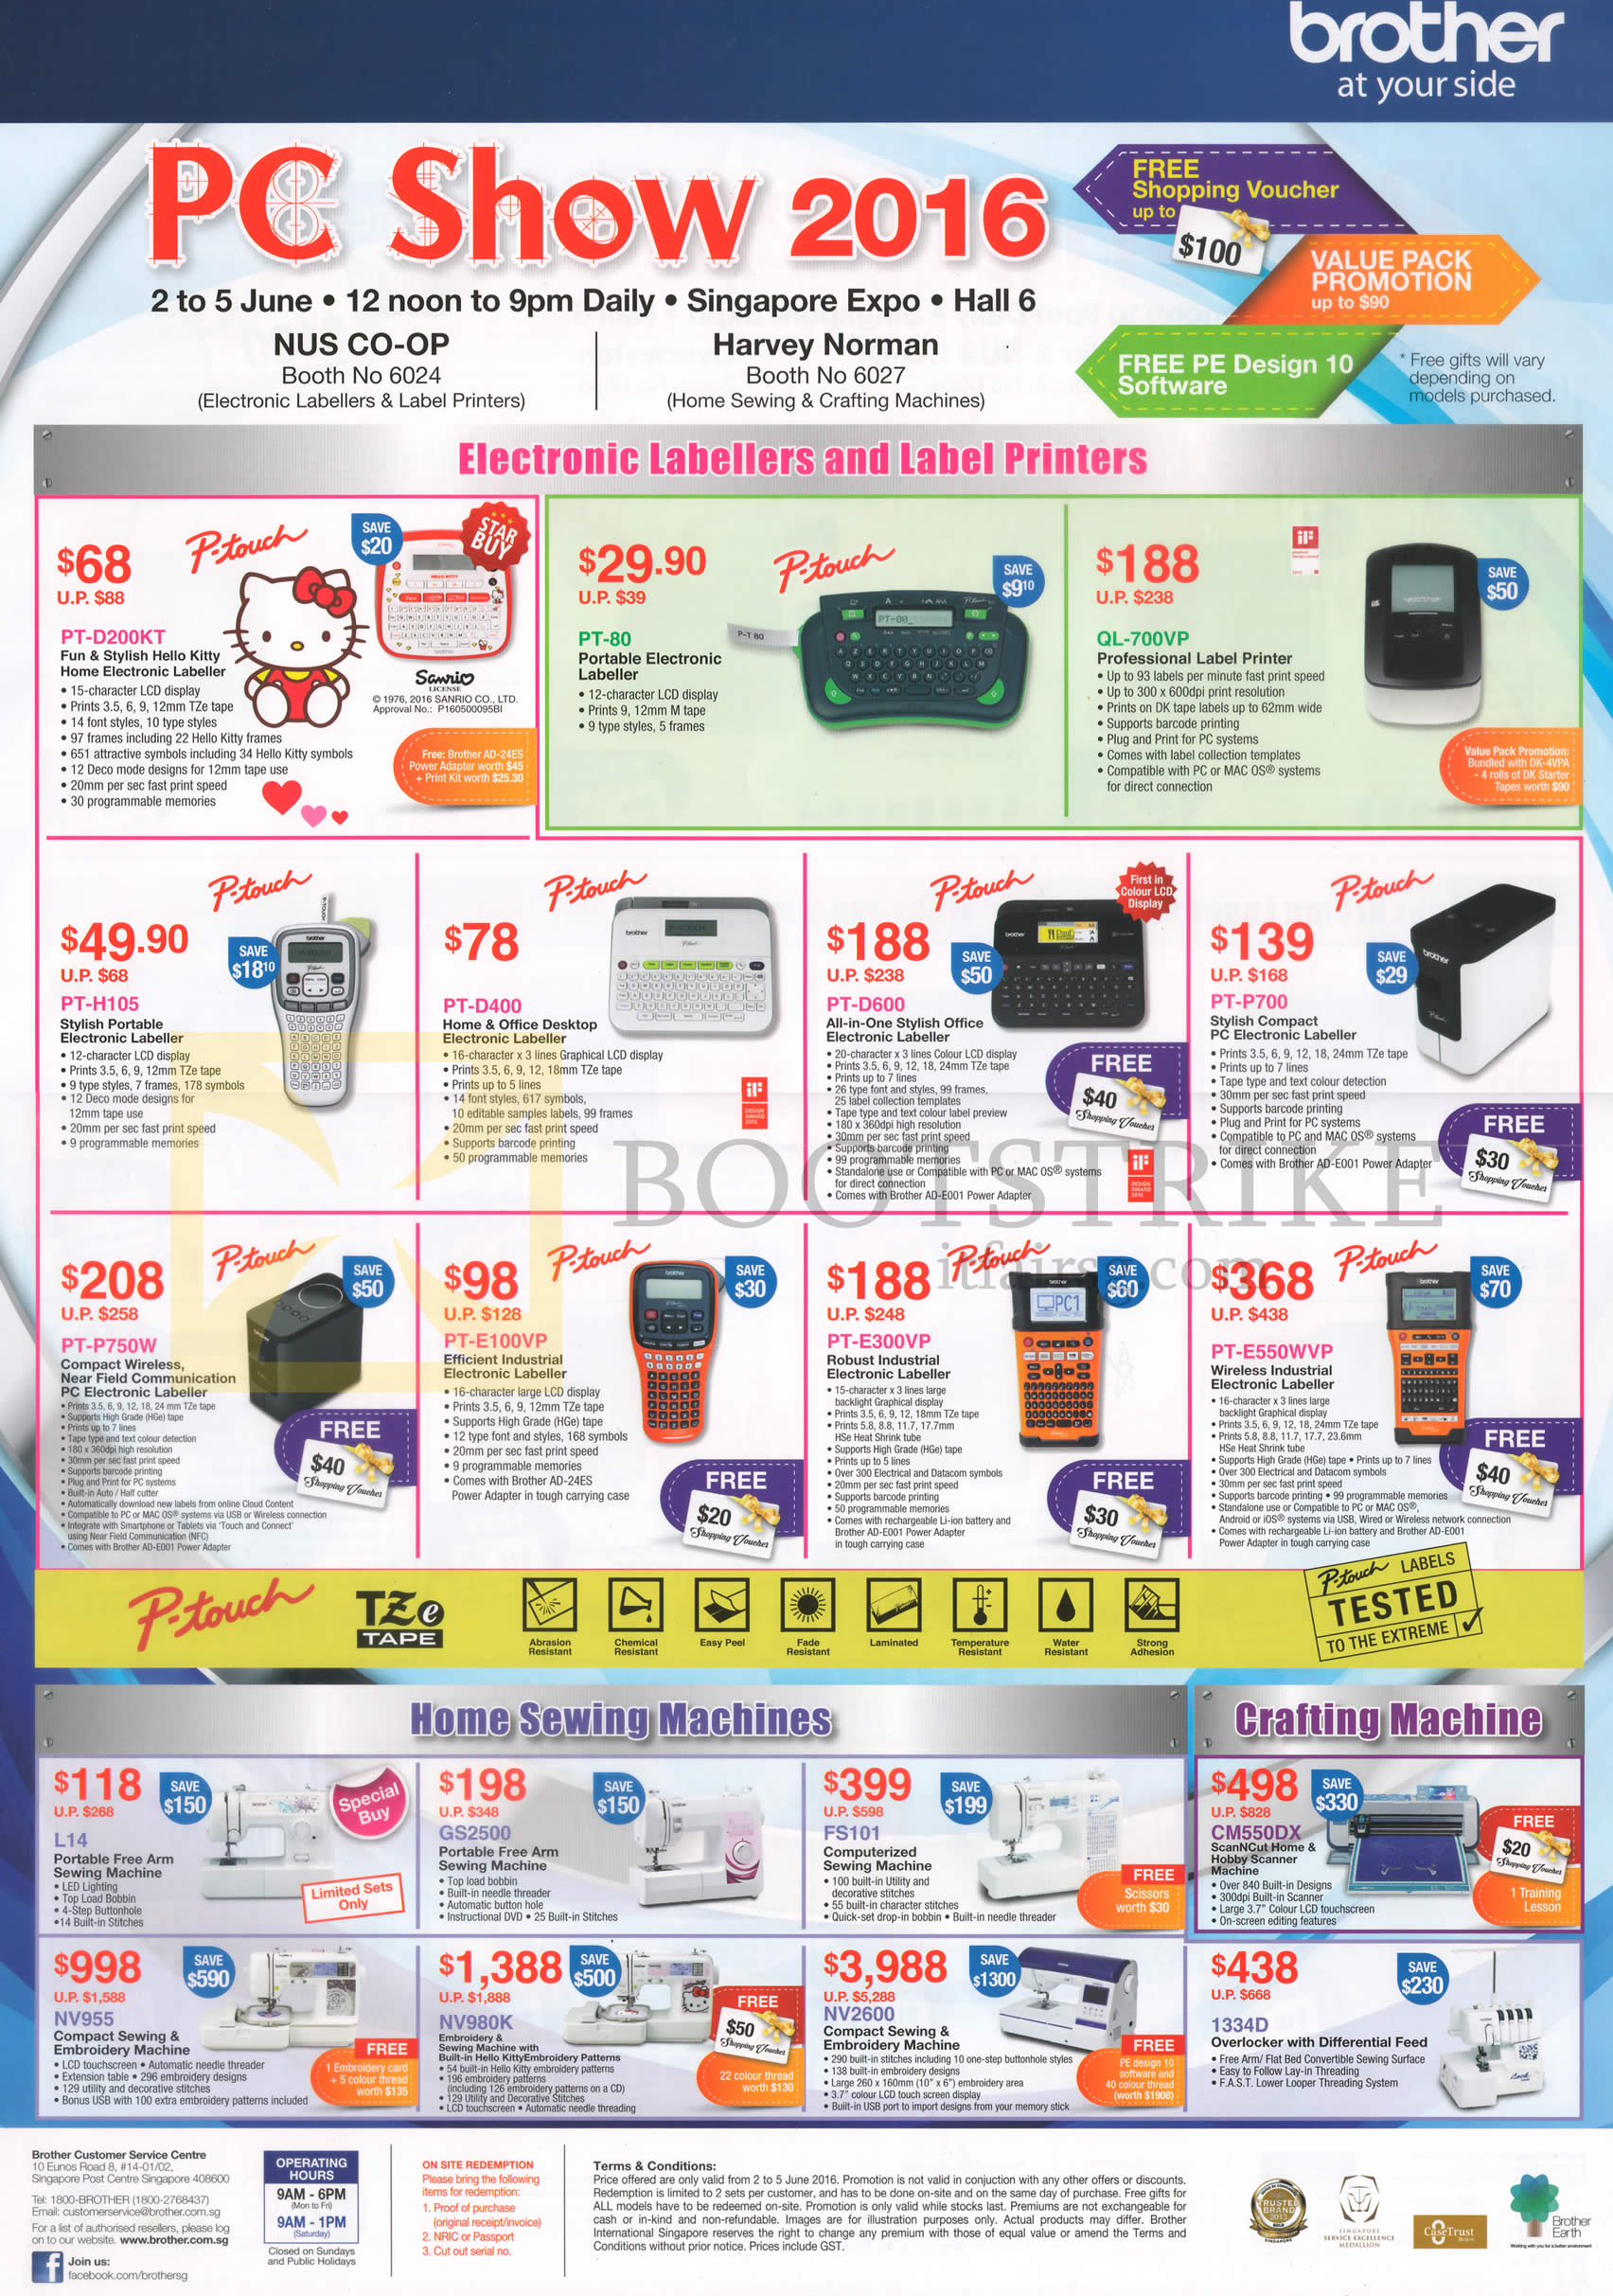 PC SHOW 2016 price list image brochure of Brother Labellers P-Touch, Sewing Machines, Crafting Machines, PT-D200KT, 80, H105, D400, D600, P700, QL-700VP, L14, GS2500, FS101, NV955, NV980K, 2600